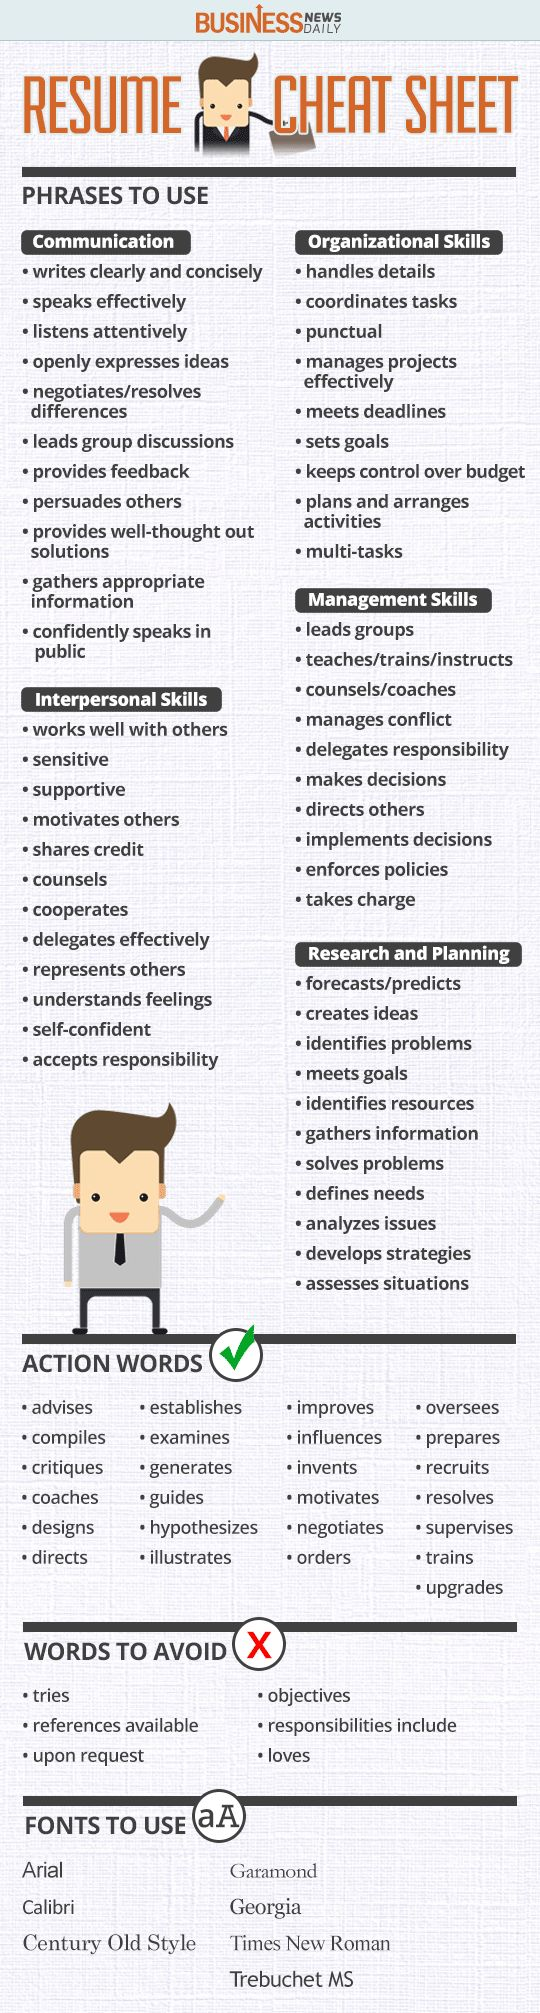 Opposenewapstandardsus  Ravishing  Ideas About Resume On Pinterest  Cv Format Resume Cv And  With Licious Resume Cheat Sheet Infographic Andrews Almost Done With A Complete Unit On Employment Which With Delectable General Resume Cover Letter Examples Also How To Write A Teacher Resume In Addition Sample Resume For Office Manager And Sample Profile For Resume As Well As Resume Skills Summary Additionally Typing Skills On Resume From Pinterestcom With Opposenewapstandardsus  Licious  Ideas About Resume On Pinterest  Cv Format Resume Cv And  With Delectable Resume Cheat Sheet Infographic Andrews Almost Done With A Complete Unit On Employment Which And Ravishing General Resume Cover Letter Examples Also How To Write A Teacher Resume In Addition Sample Resume For Office Manager From Pinterestcom